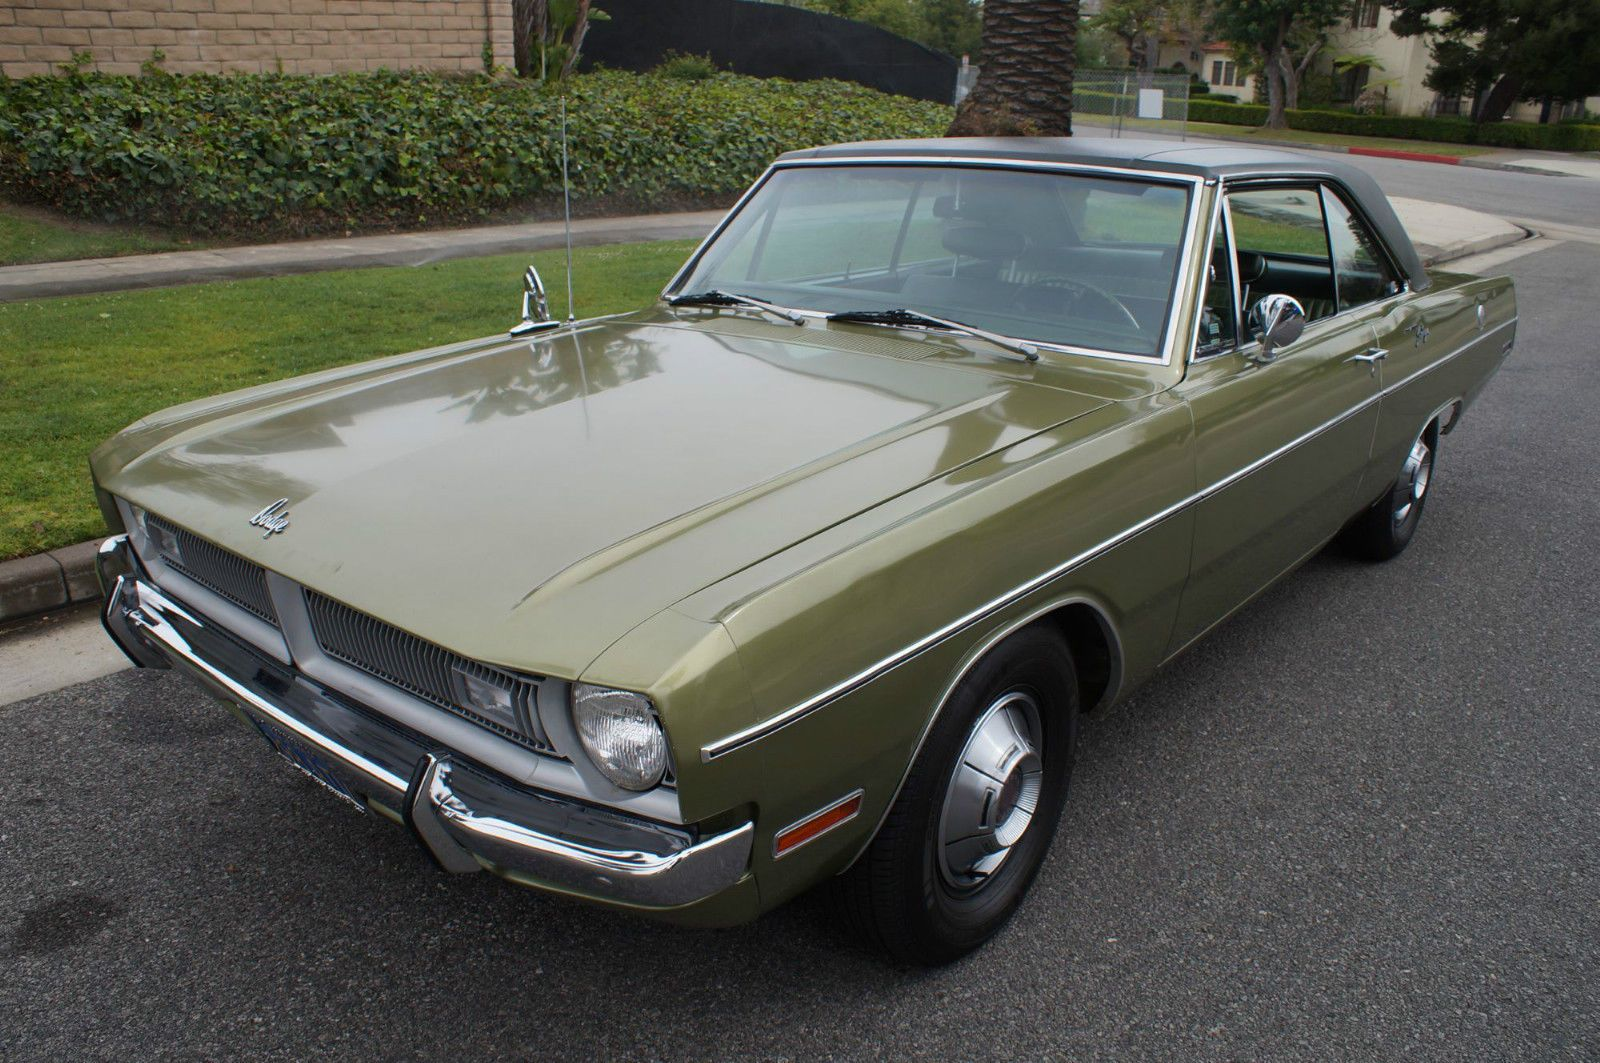 1969 dodge dart gts 383 original drivetrain and 4 speed the only heater delete 1969 dodge dart gts 383 produced my muscle cars pinterest dodge dart